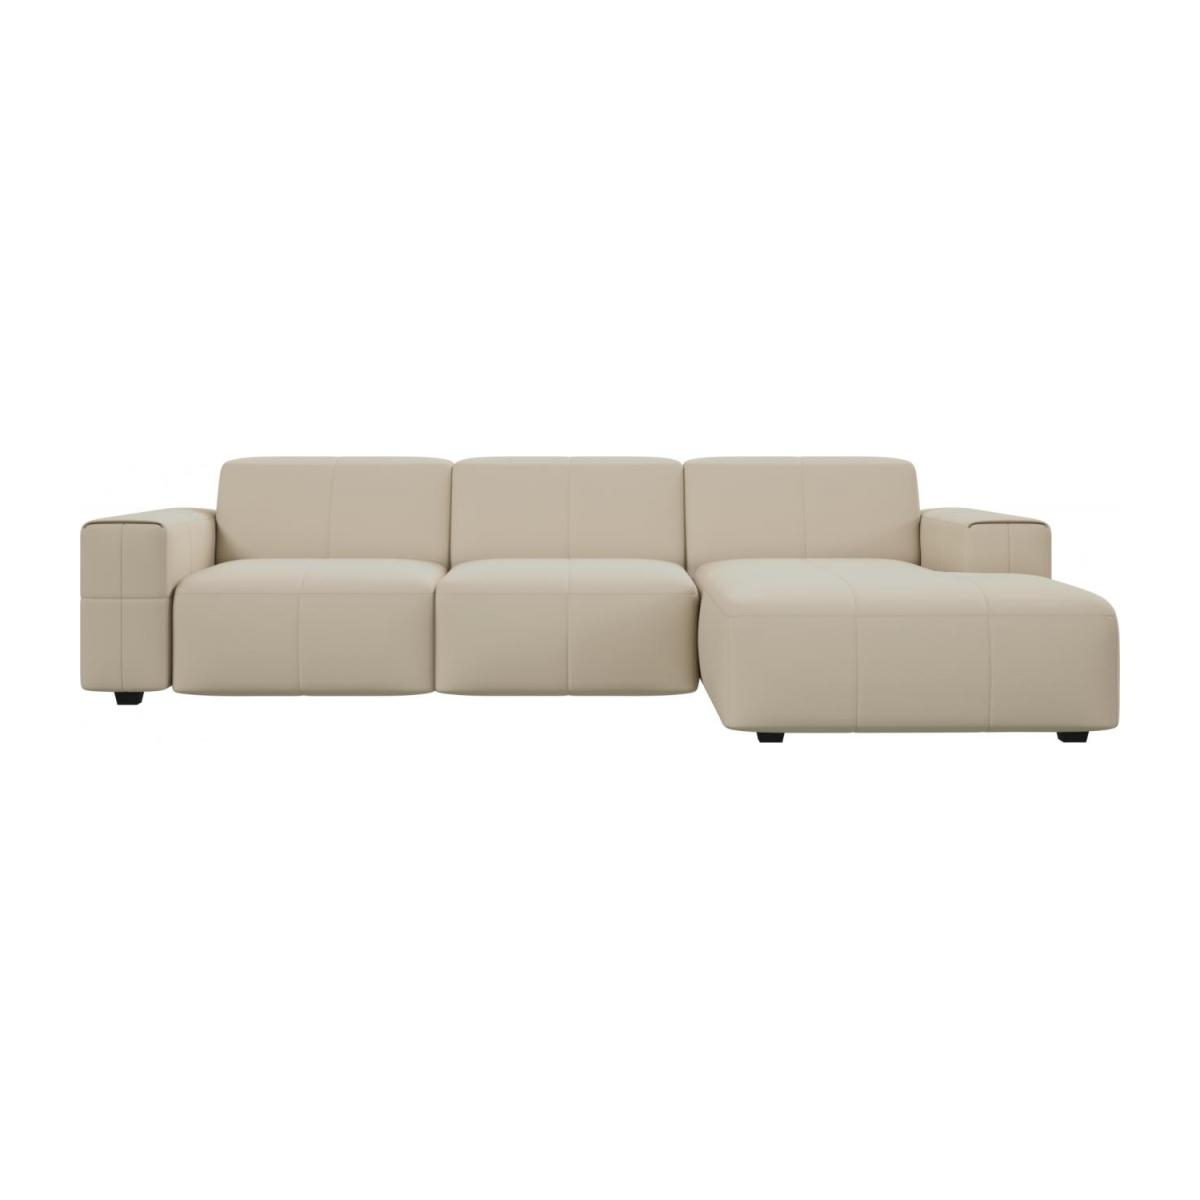 3 seater sofa with chaise longue on the right in Savoy semi-aniline leather, off white n°2